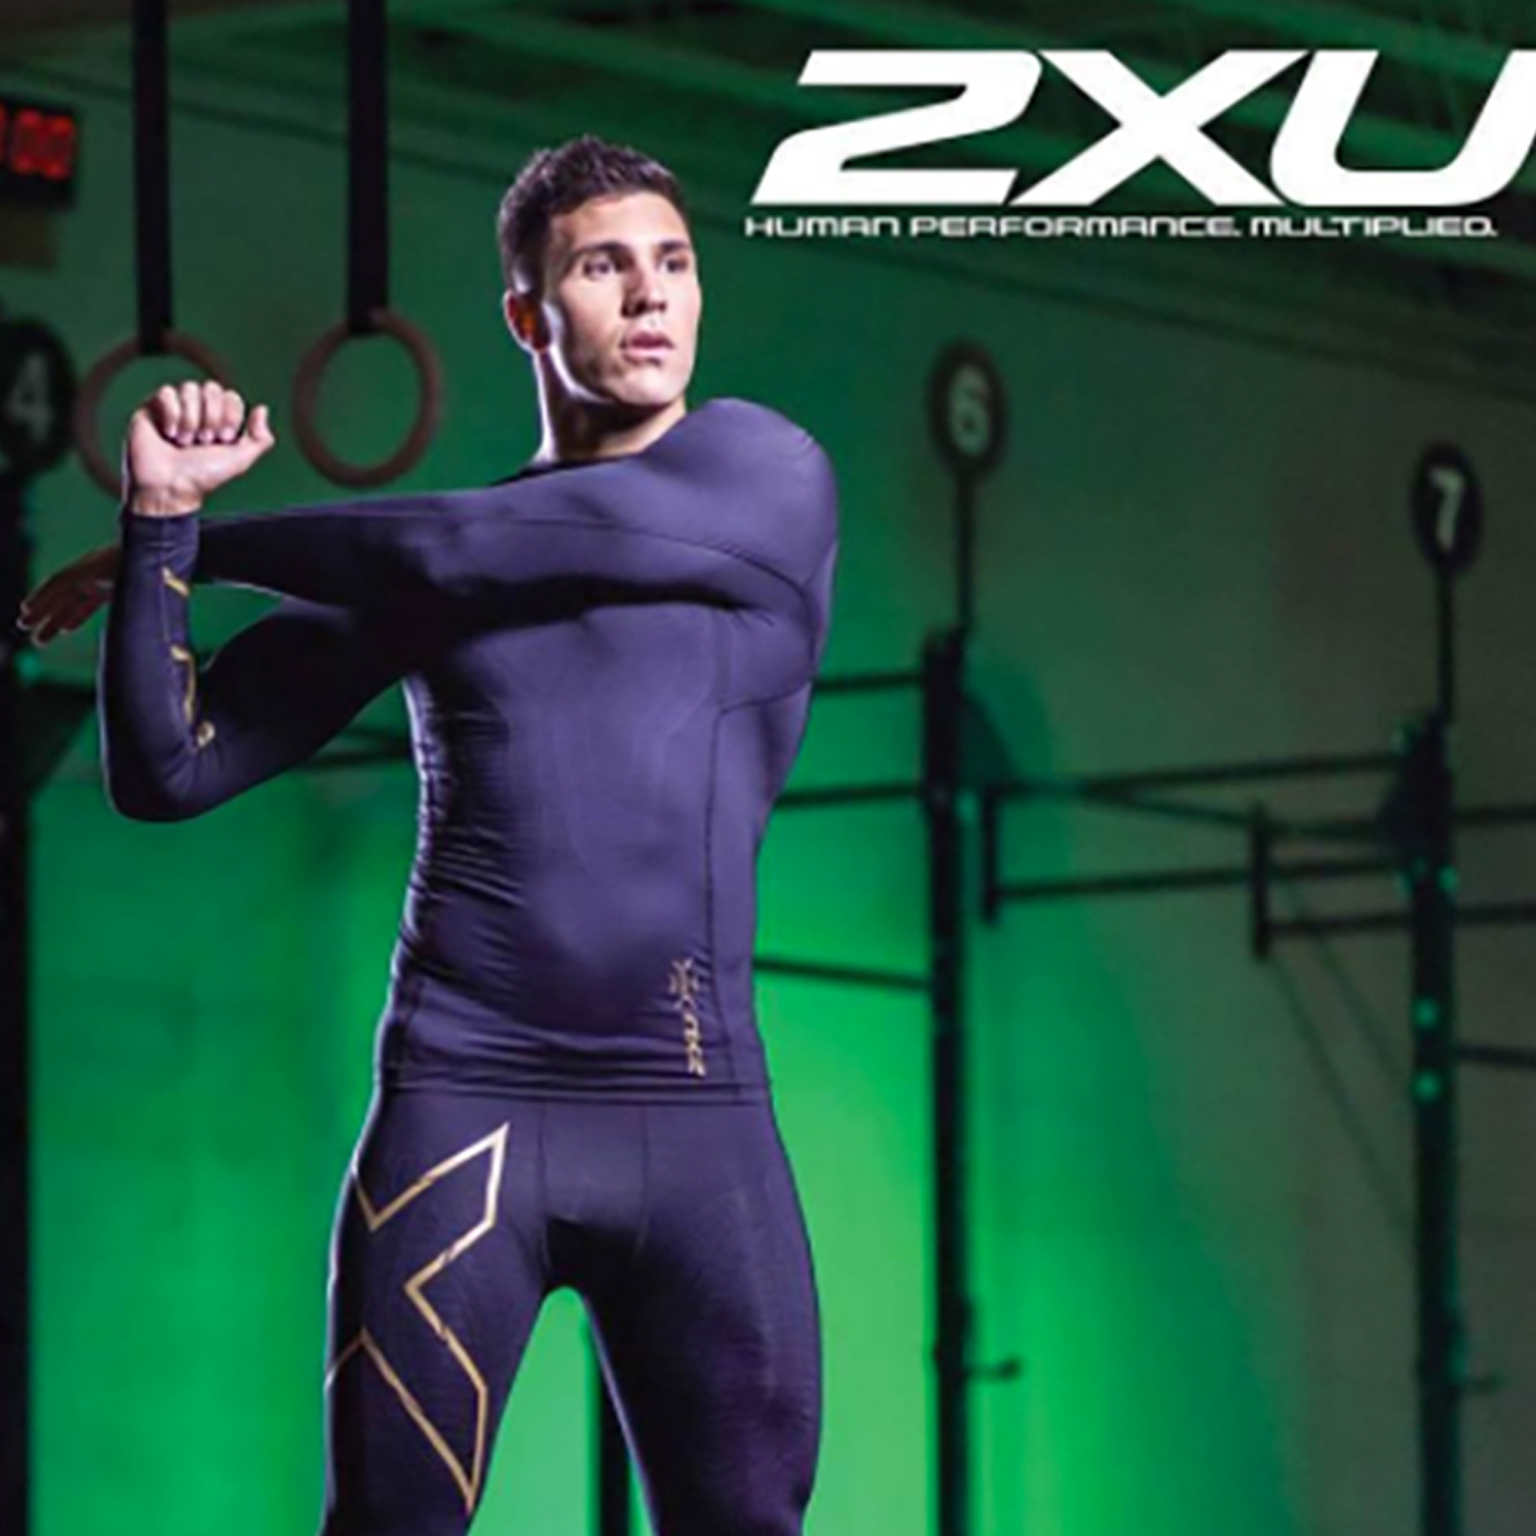 Toronto-Fitness-Model-Agency-Fitness-2XU-Commercial-Brendan-Downey